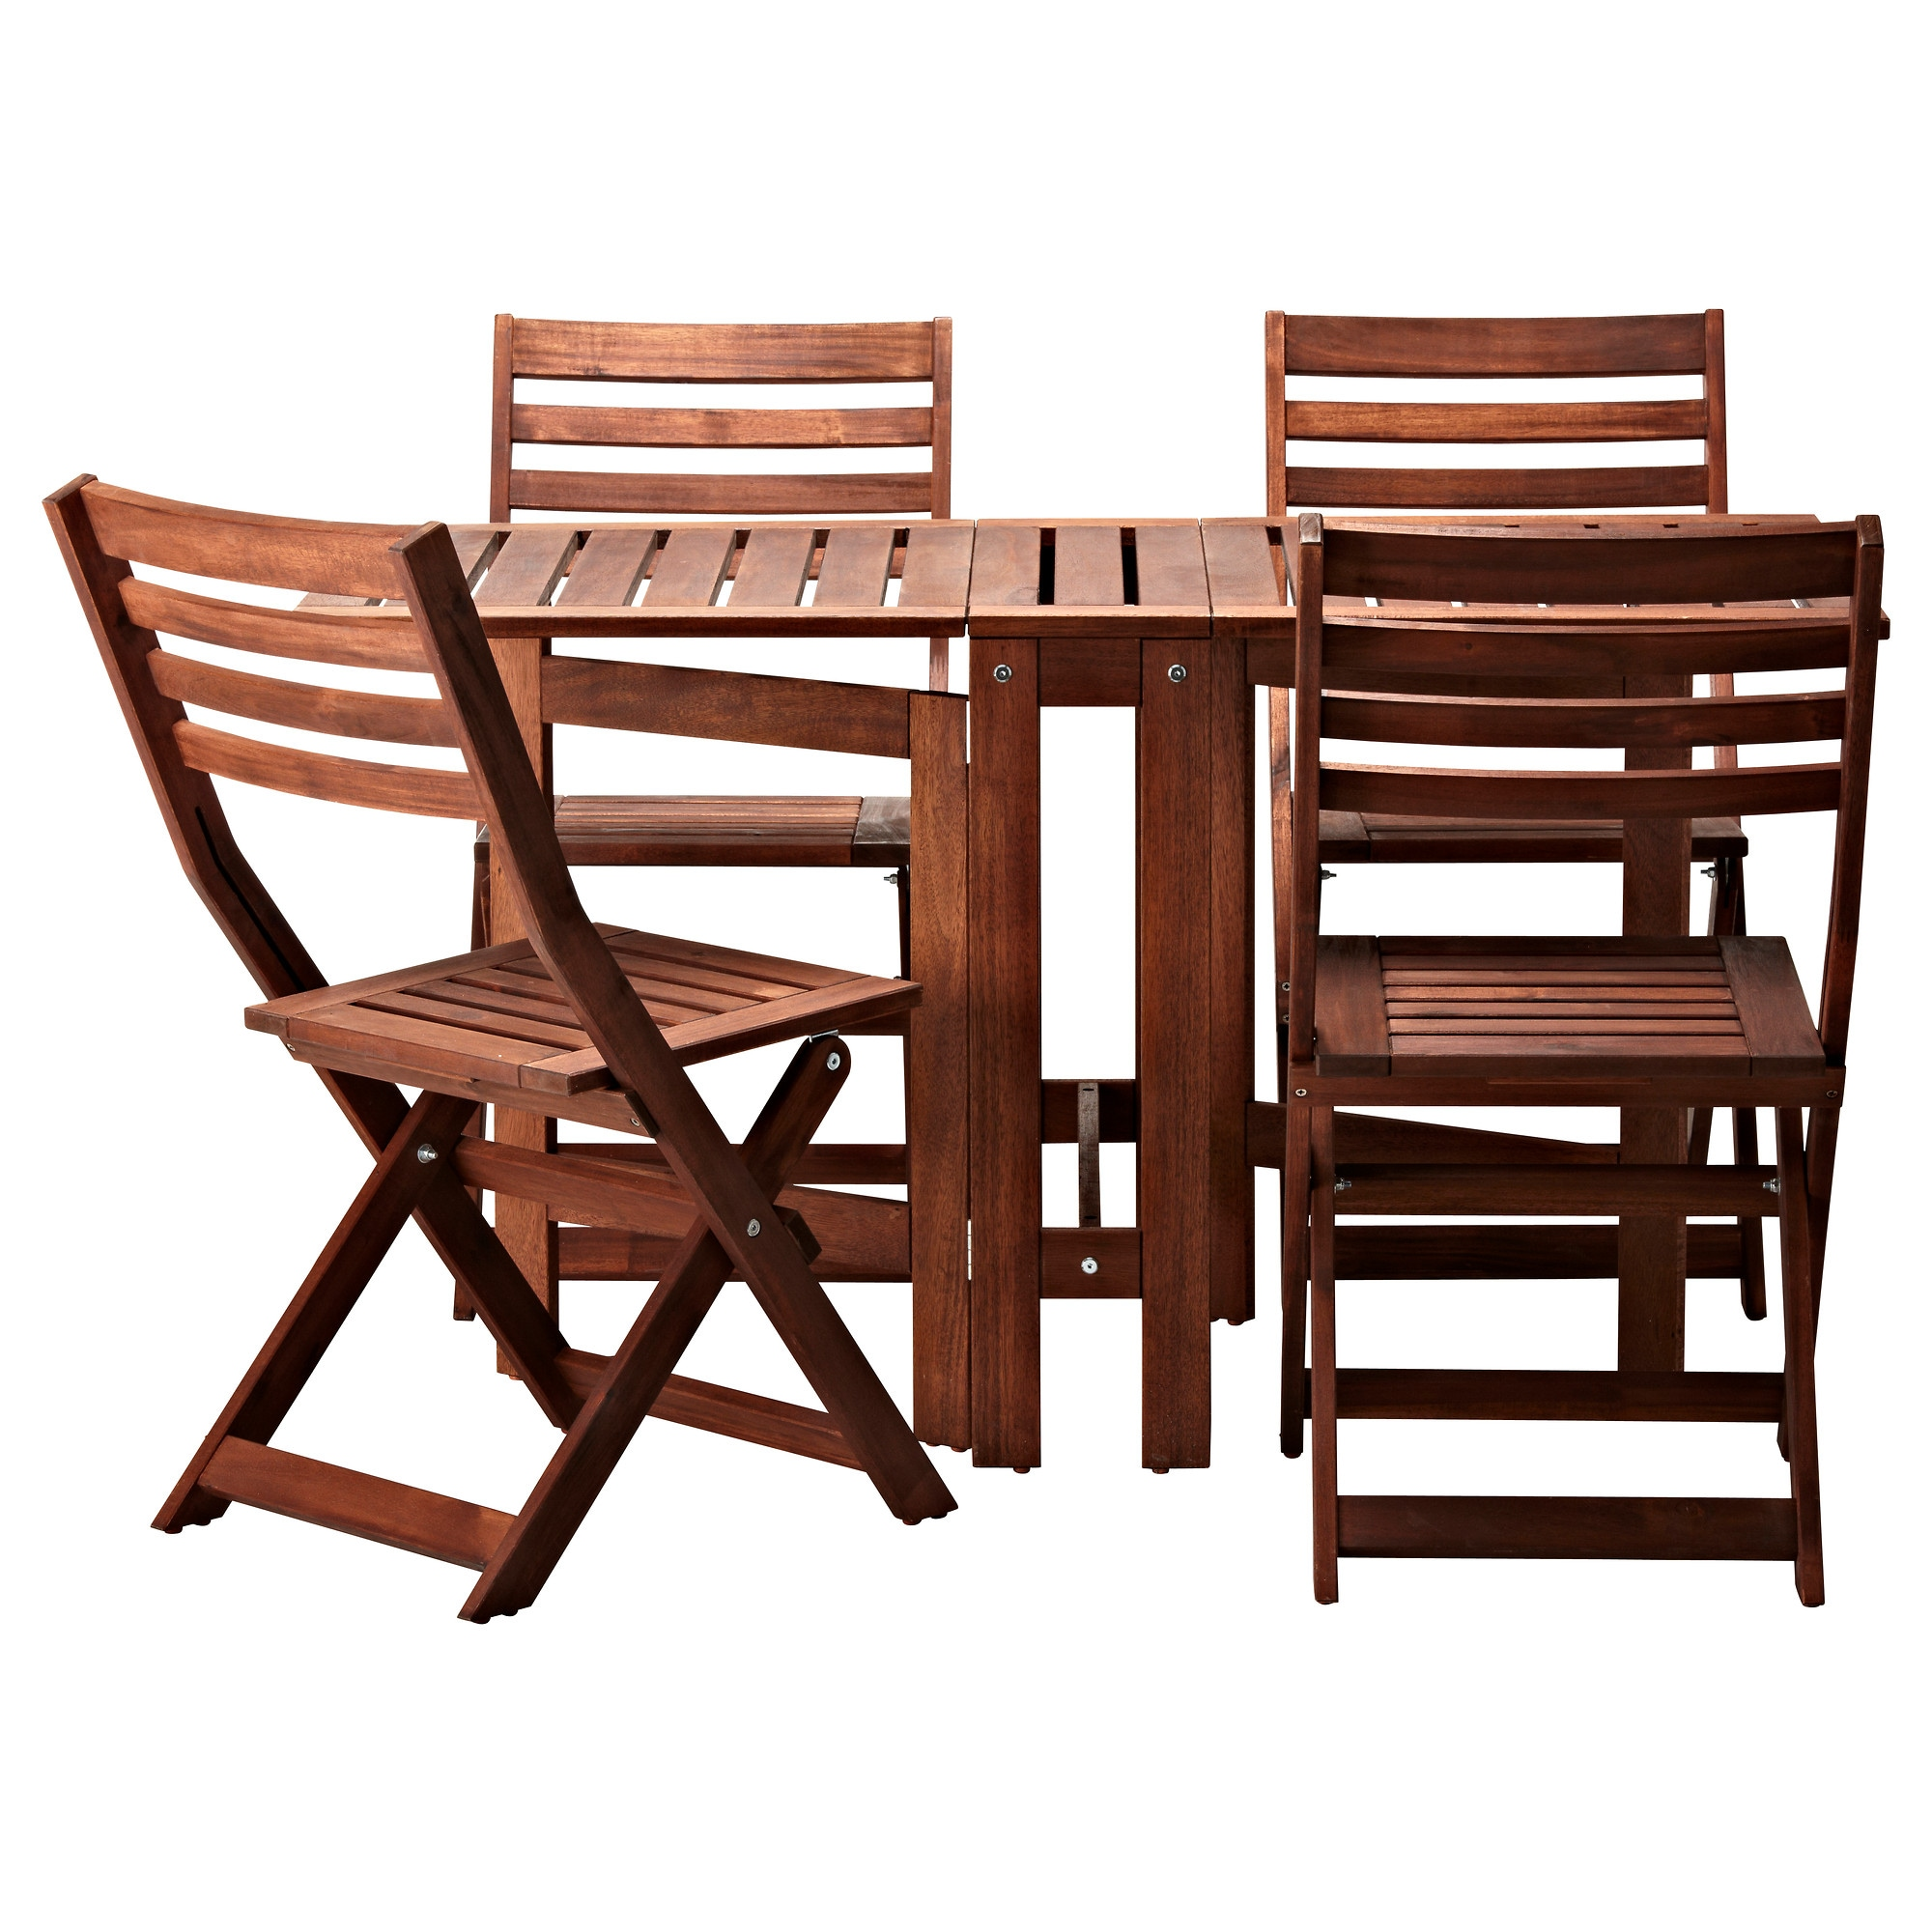 Ikea garden furniture decoration access for Outdoor table set